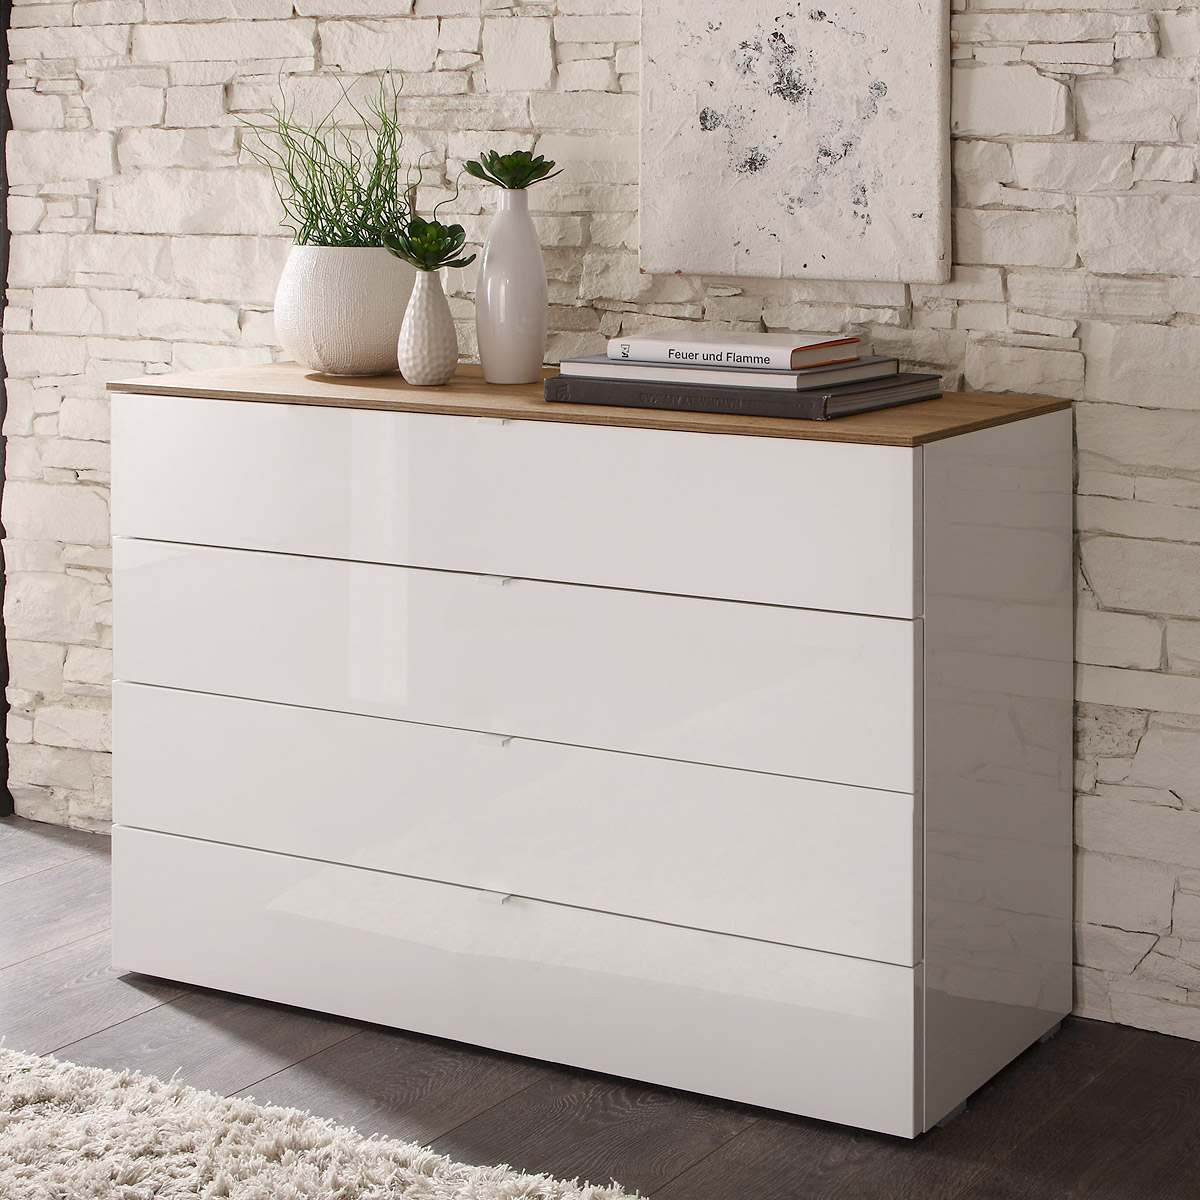 kommode tambura sideboard wei lack und eiche natur mit. Black Bedroom Furniture Sets. Home Design Ideas